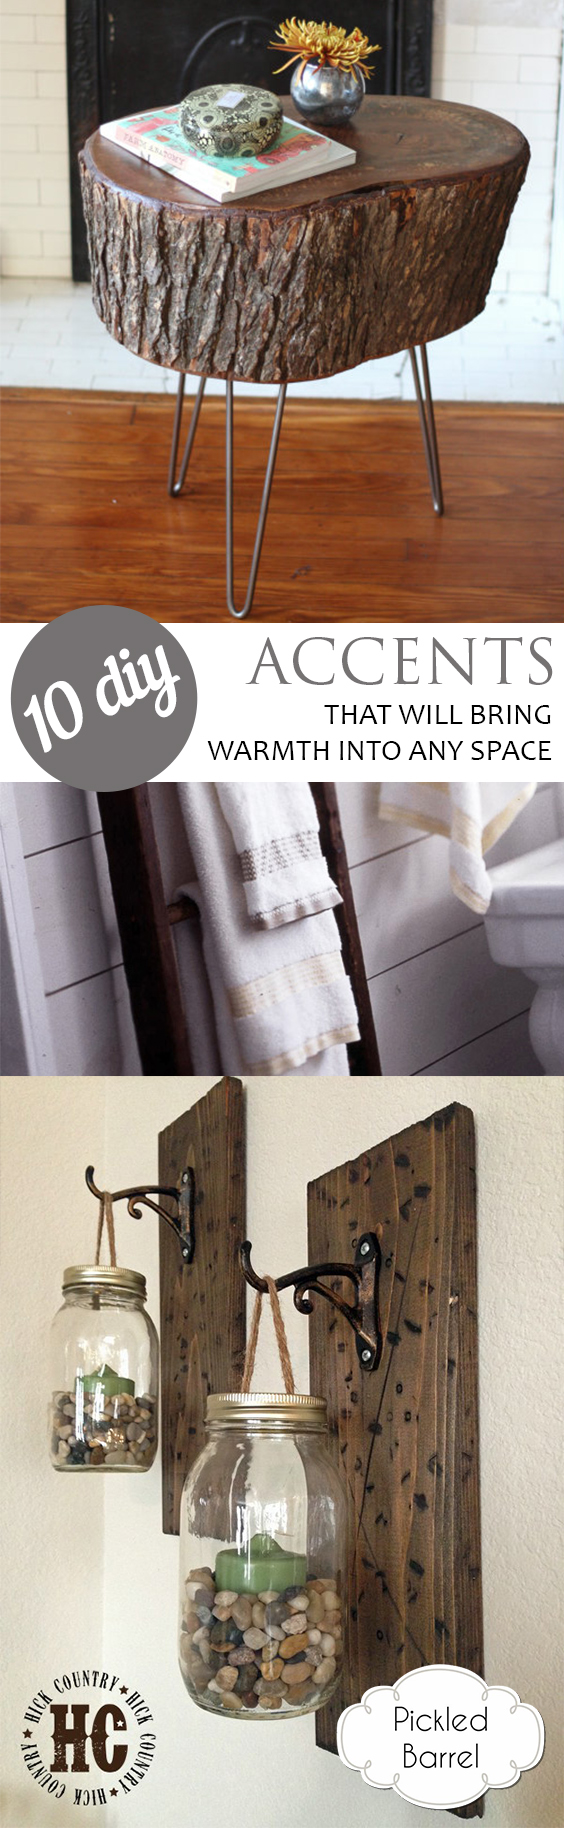 Rustic Accents, Rustic Accents for the Home, DIY Projects, Rustic DIY Projects, Rustic Home, Rustic Home Hacks, DIY Home Decor, Easy DIY Home Decor, DIY Home Decor Tutorials, Easy Rustic DIYs, Popular Pin